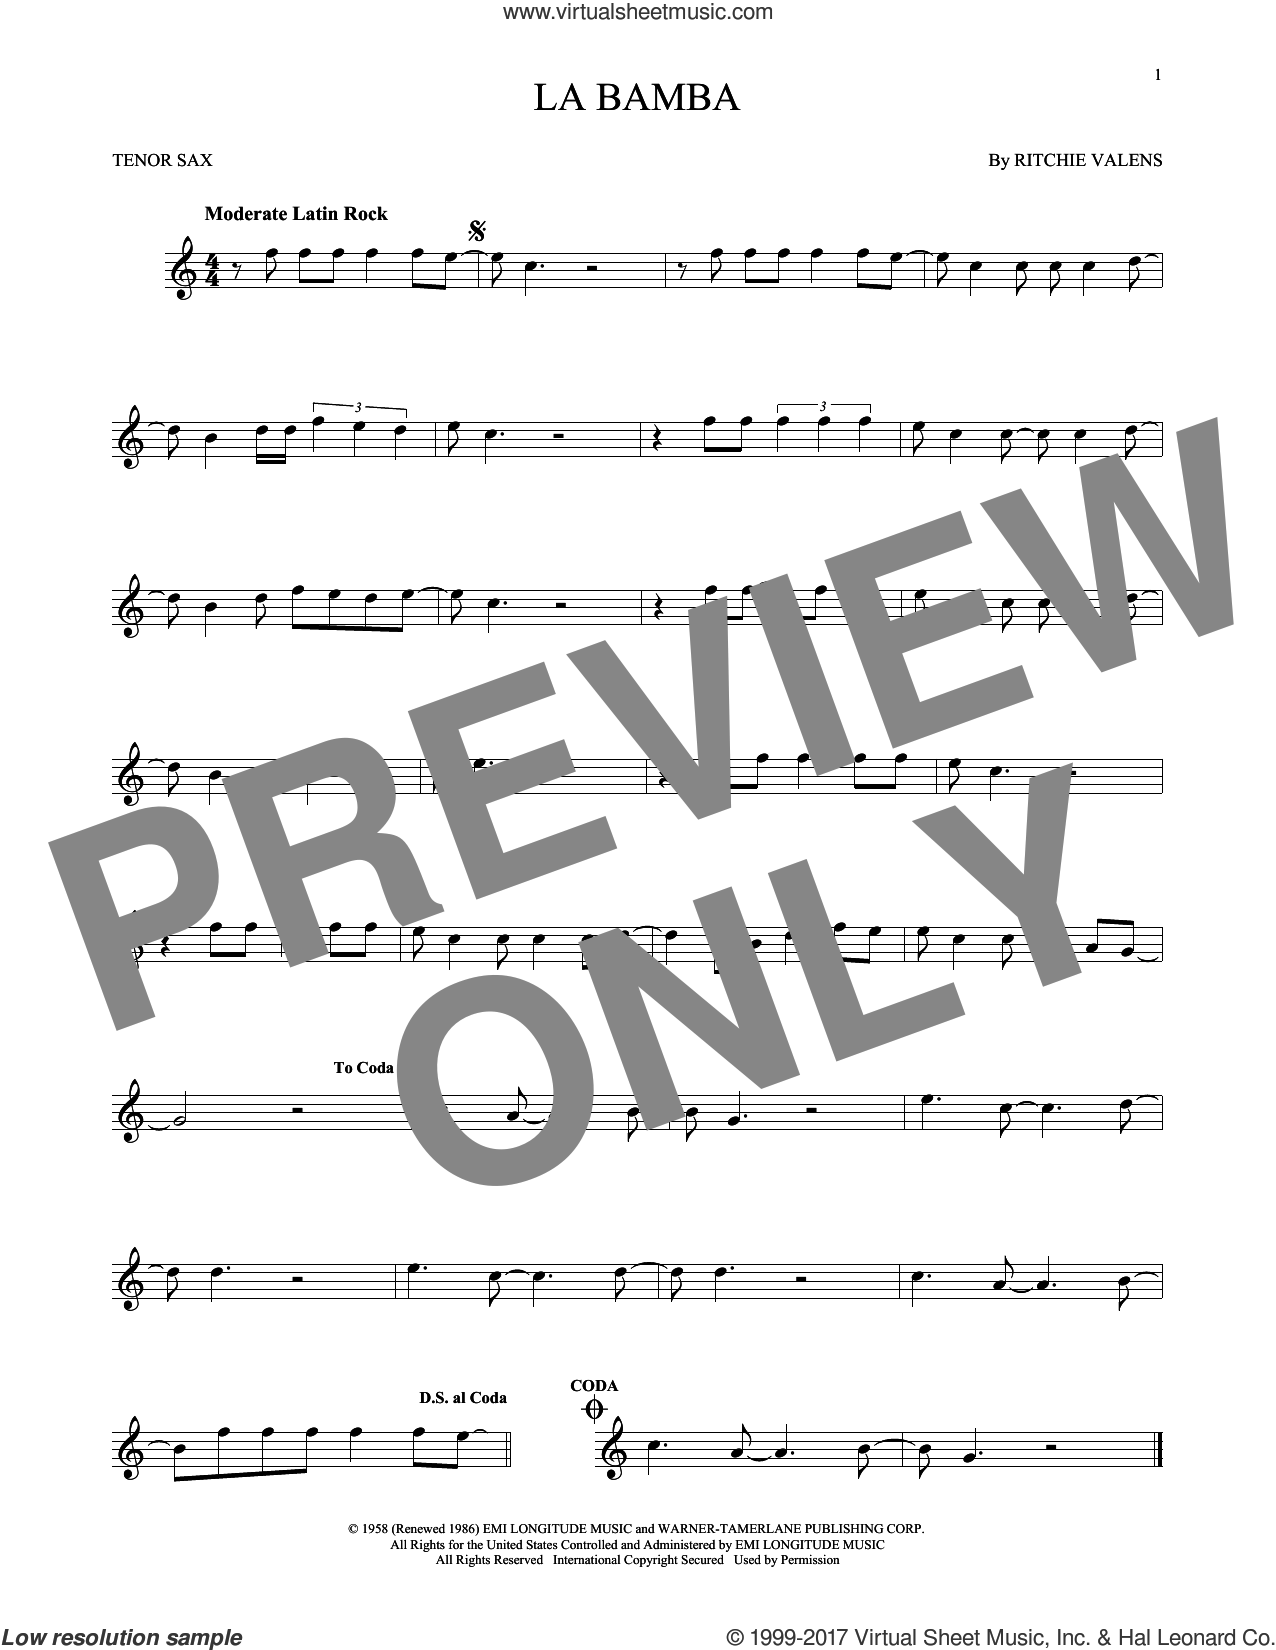 La Bamba sheet music for tenor saxophone solo by Ritchie Valens, Los Lobos and Richard Valenzuela, intermediate skill level